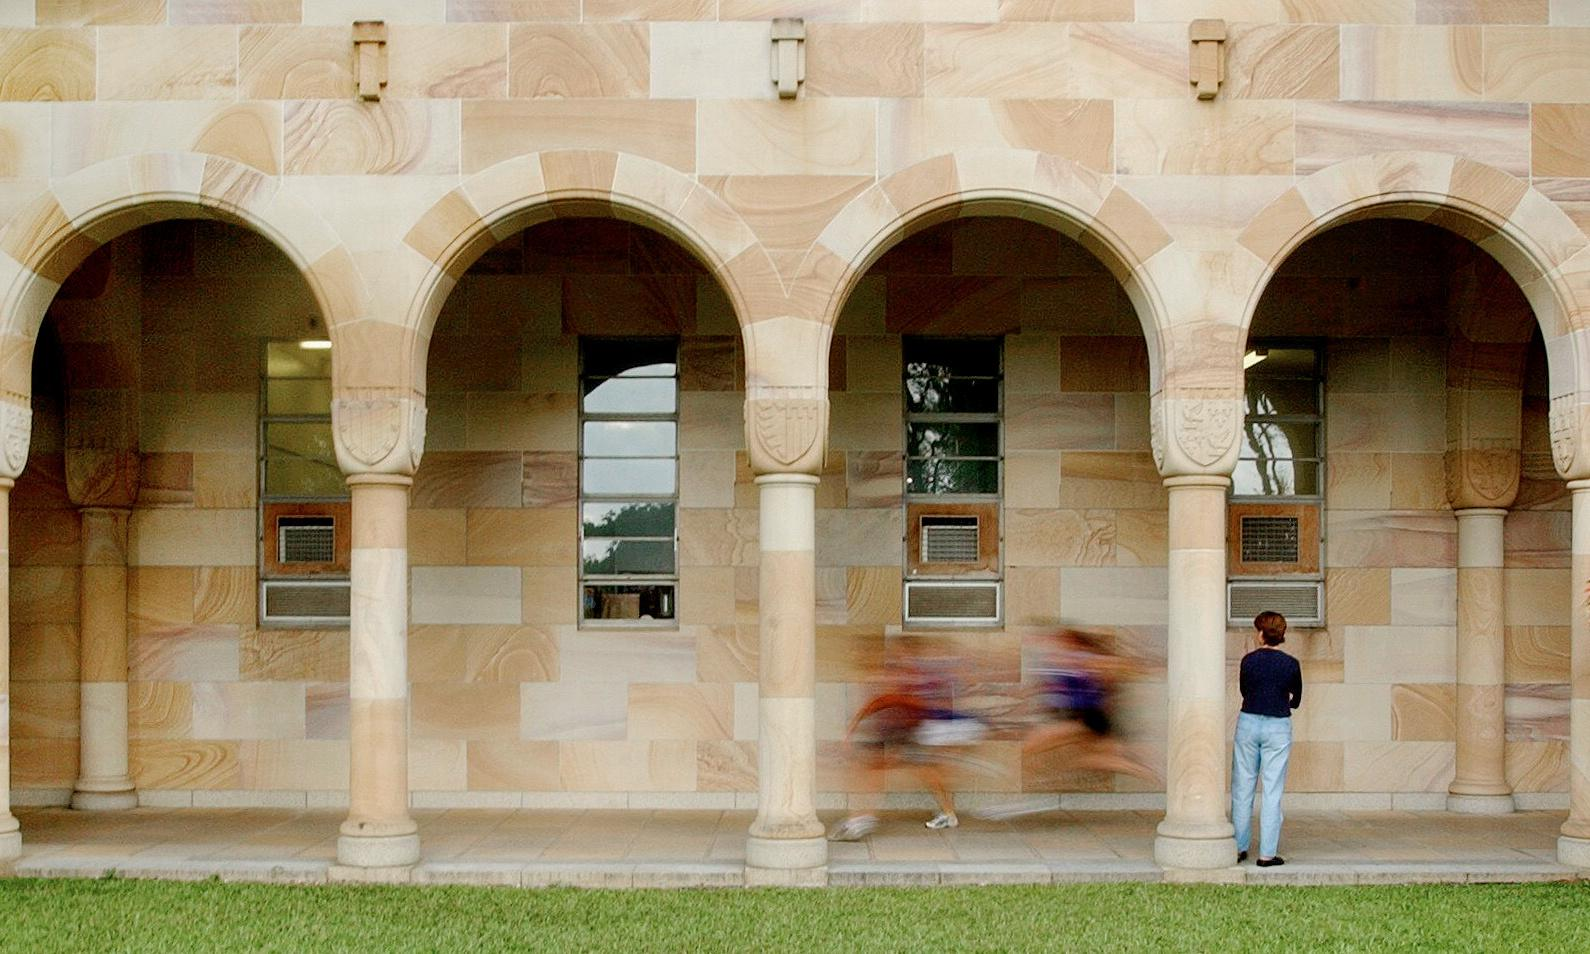 University of Queensland academics sign open letter after law dean's trans comments